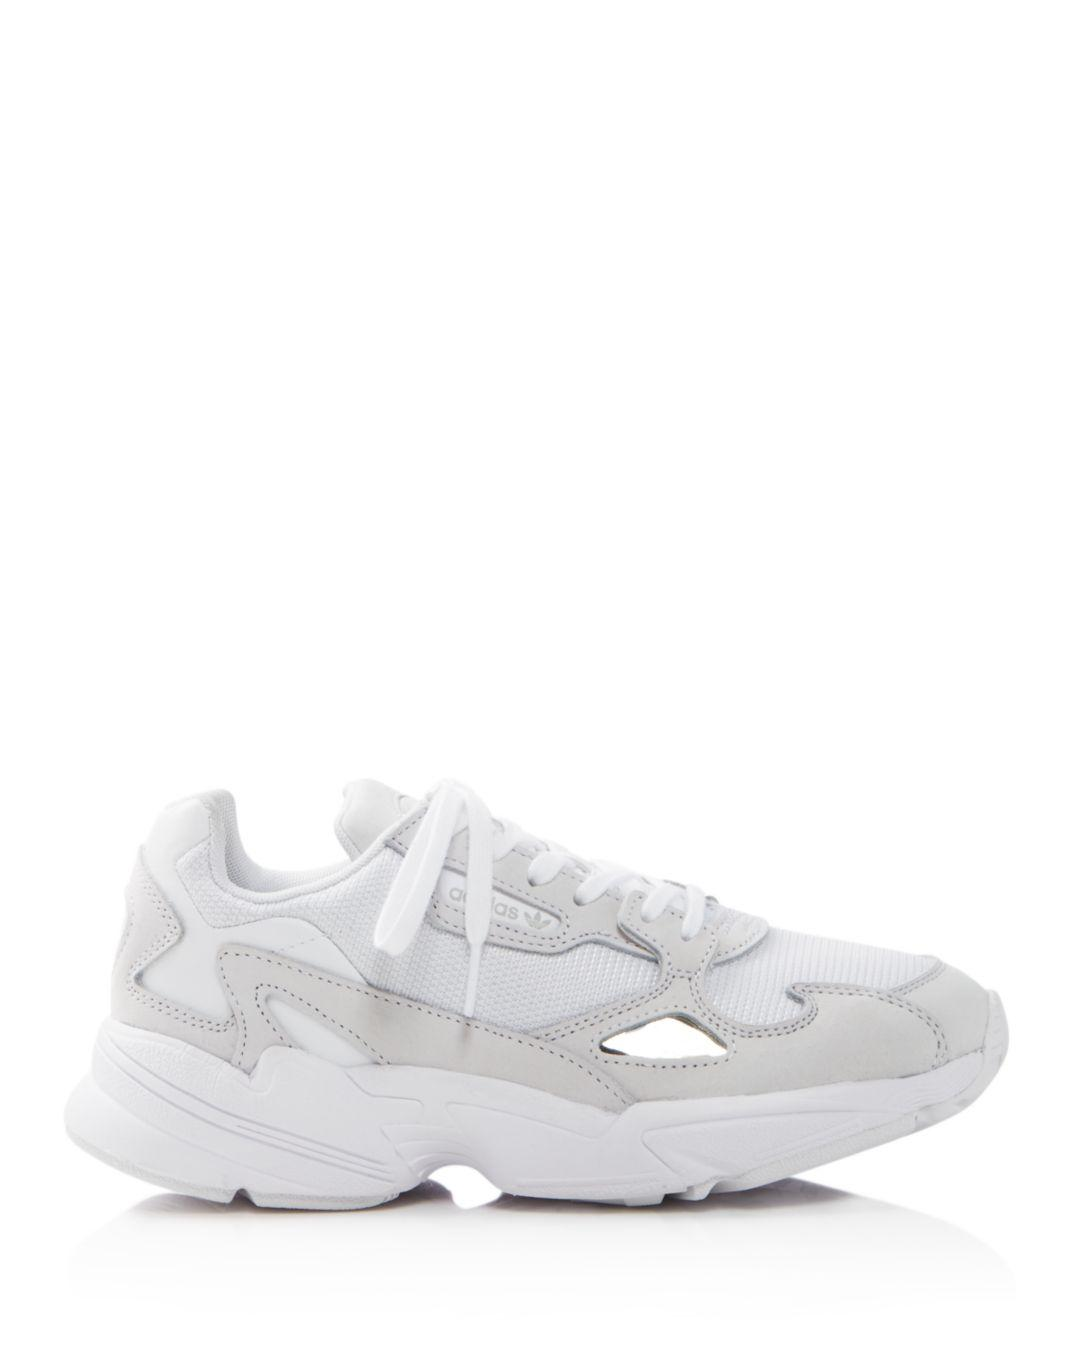 Adidas Falcon White Womens - Best Pictures Of Adidas Carimages.Org 20f0bb430